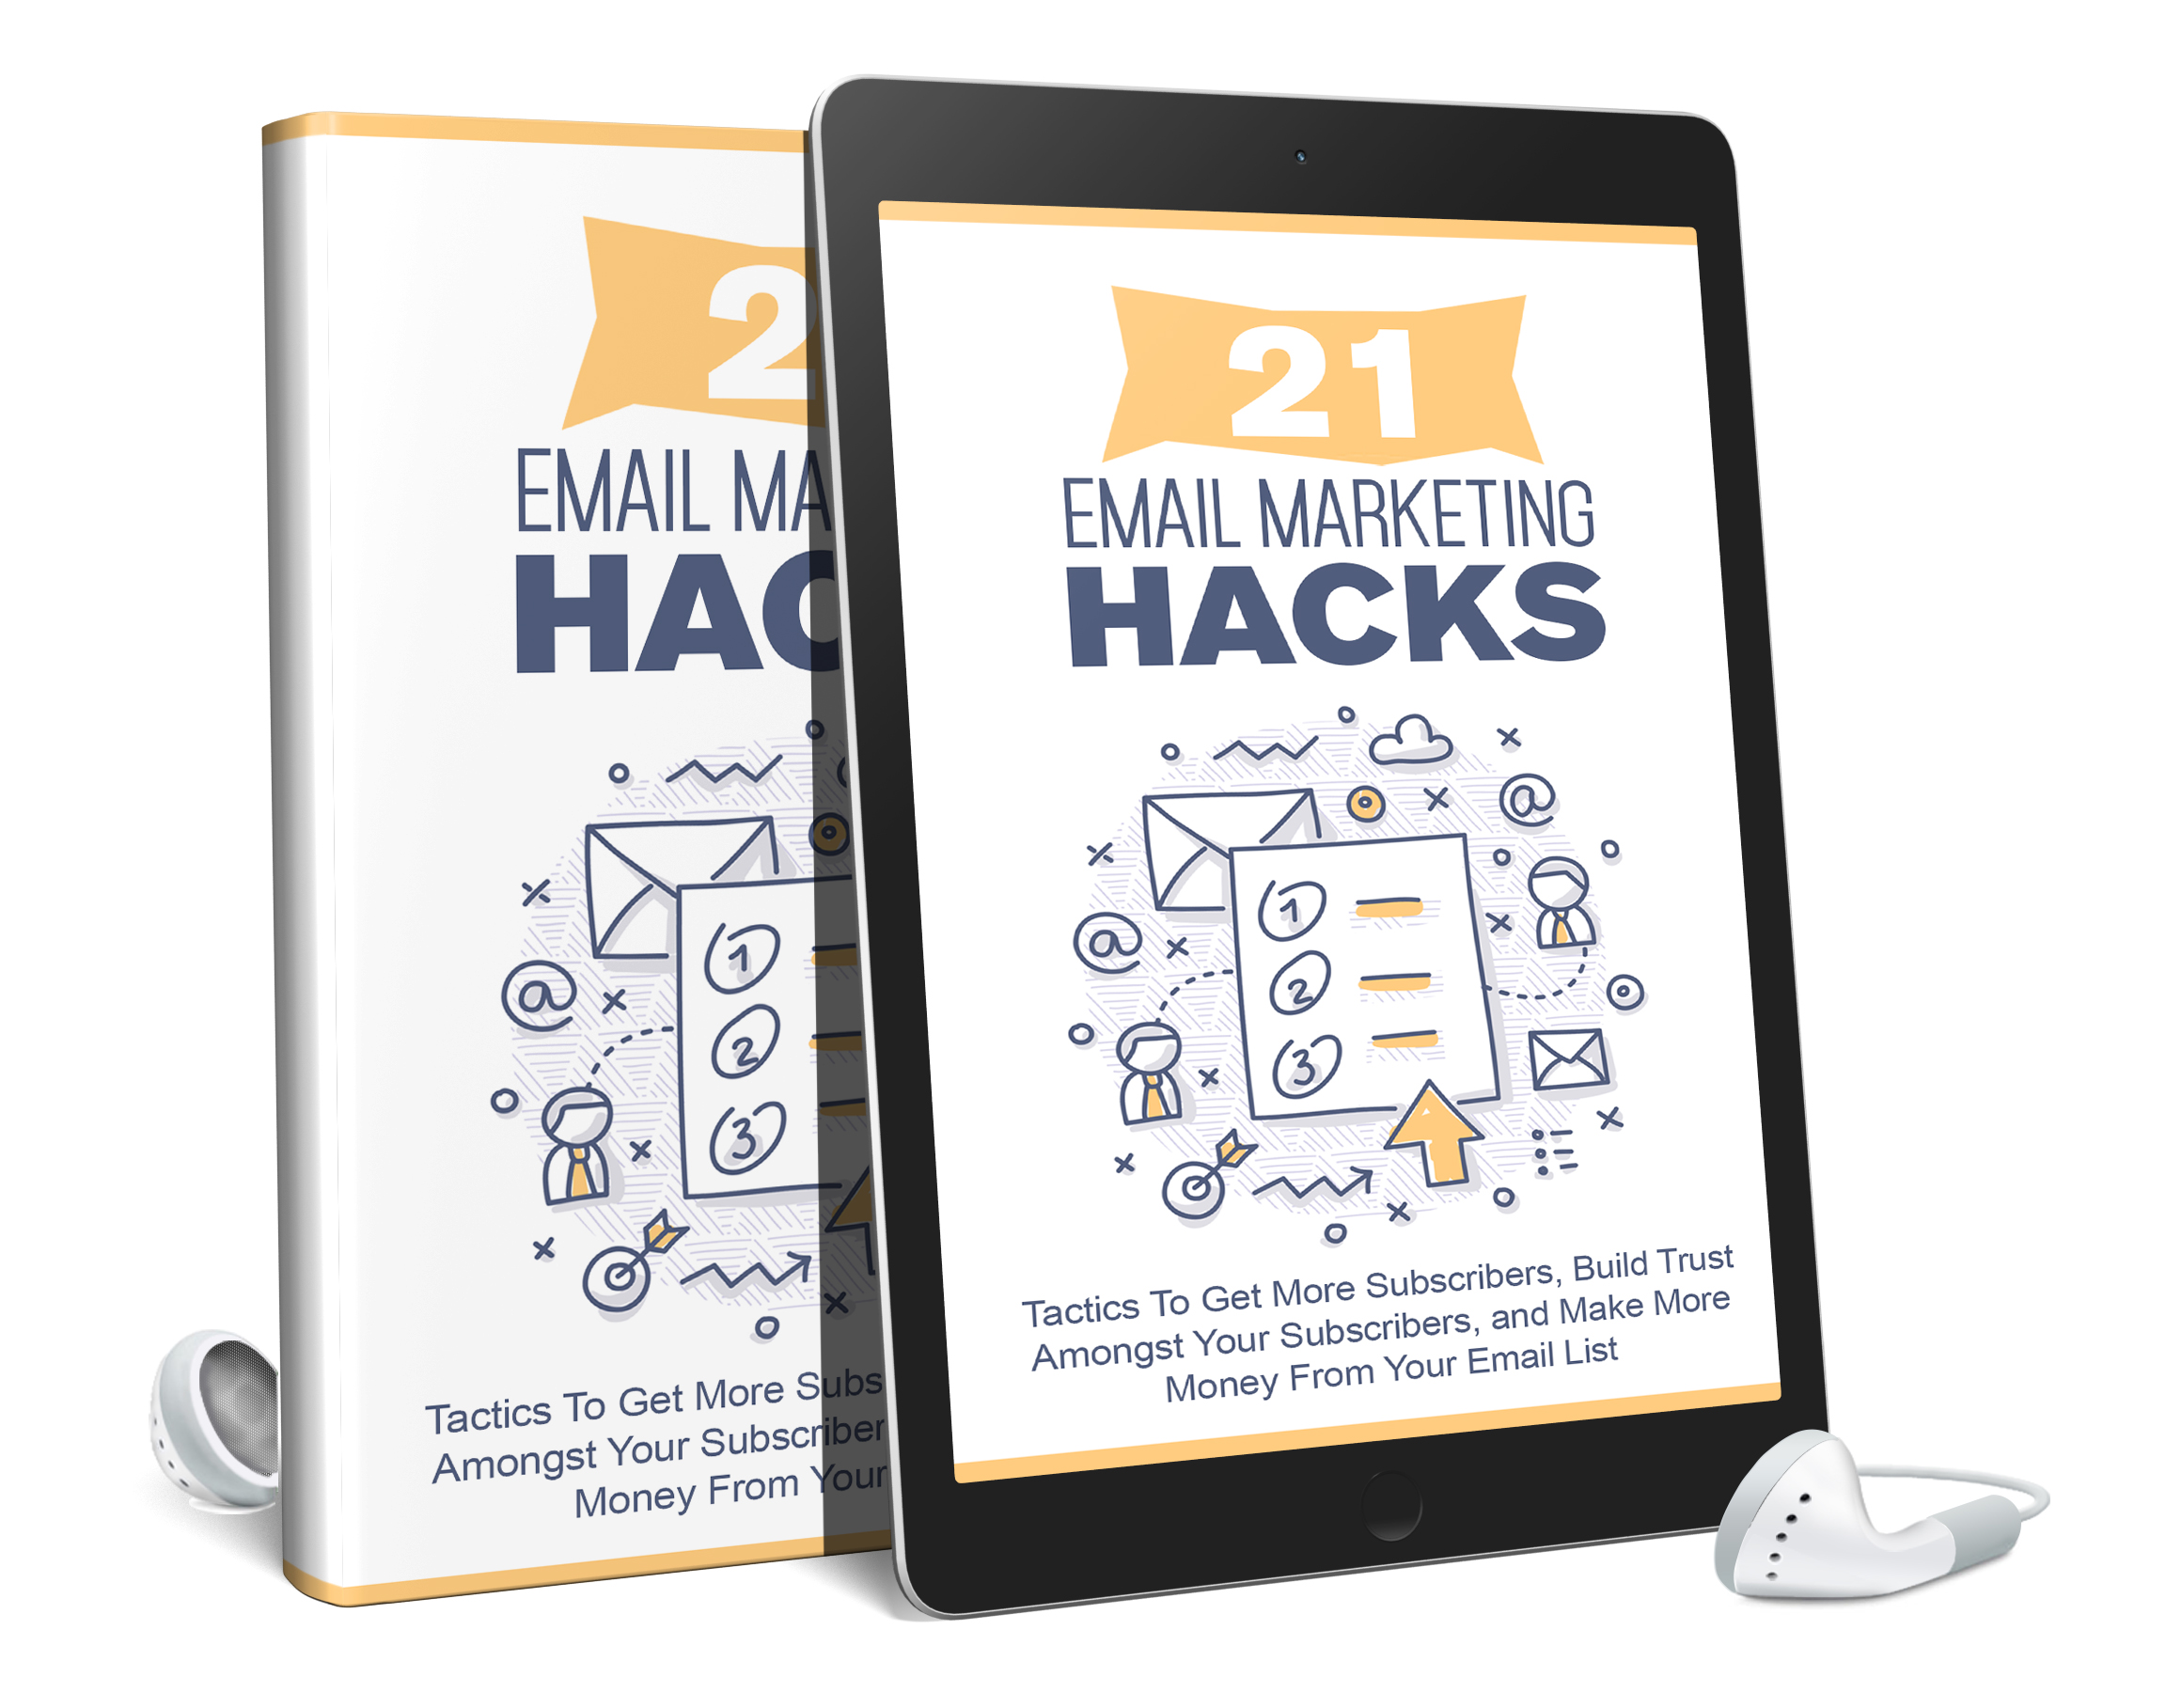 21 Email Marketing Hacks AudioBook and Ebook